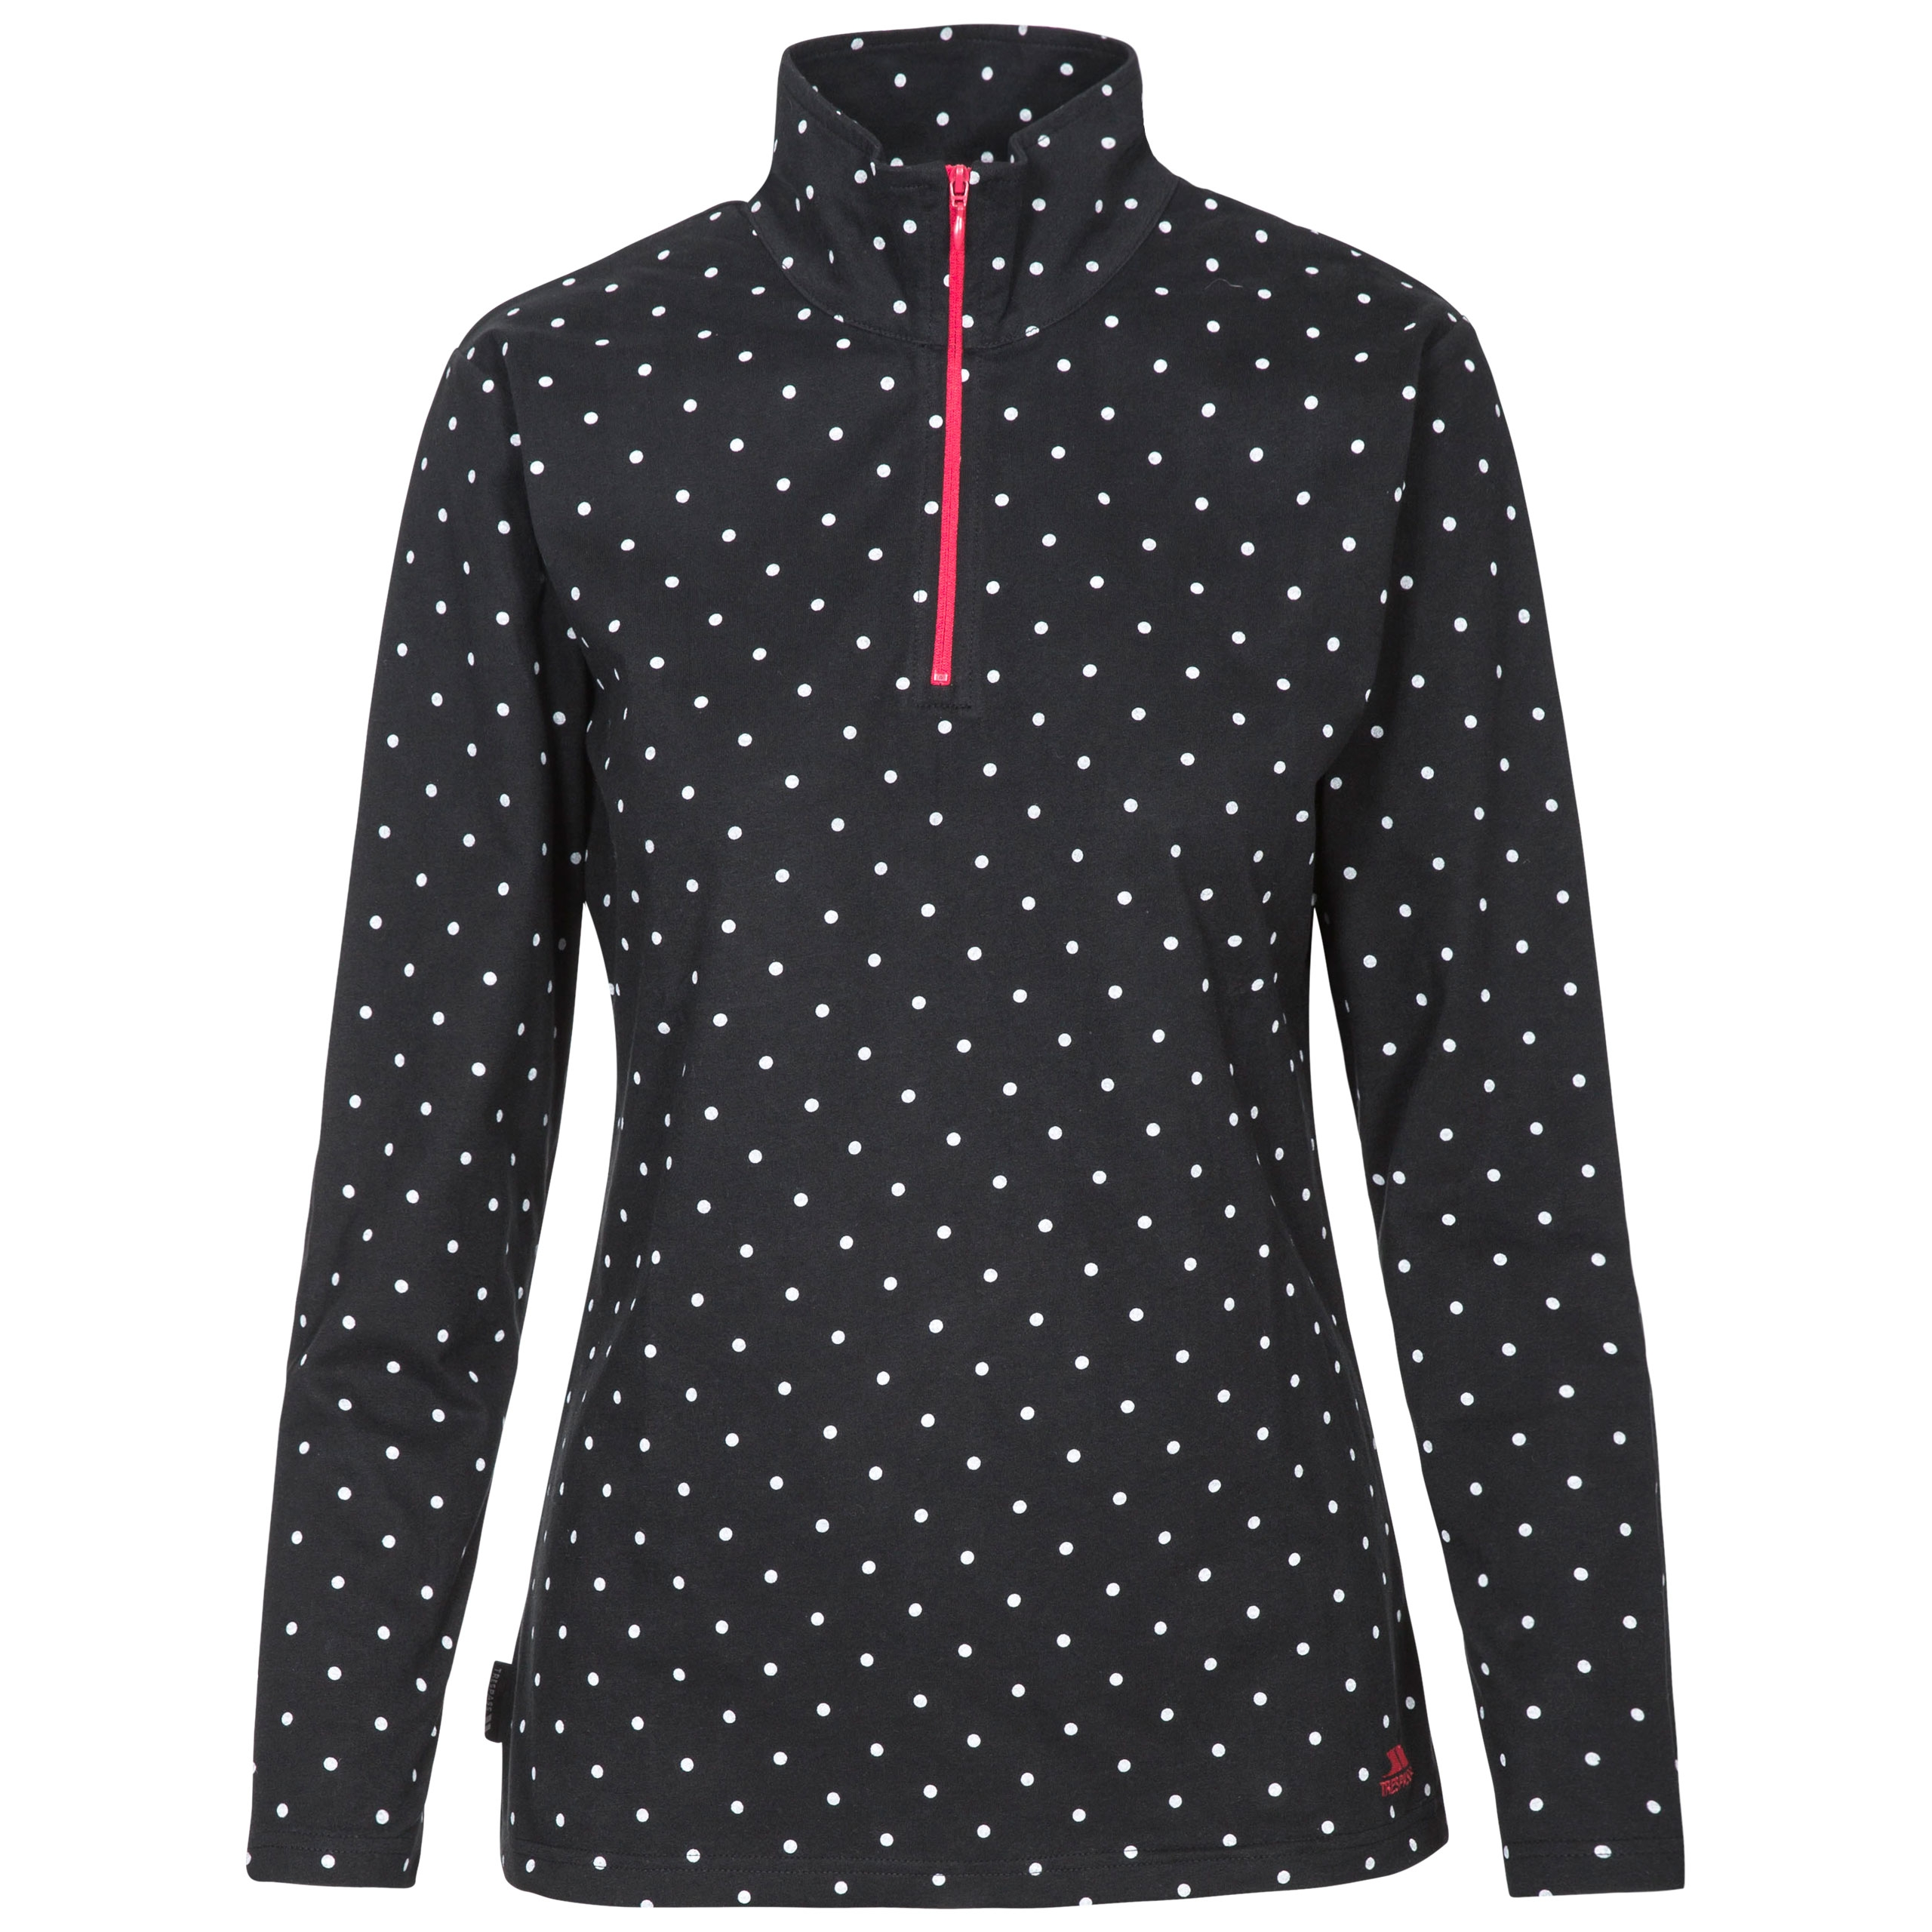 Trespass Womens//Ladies Betty Printed Long Sleeve Top TP736